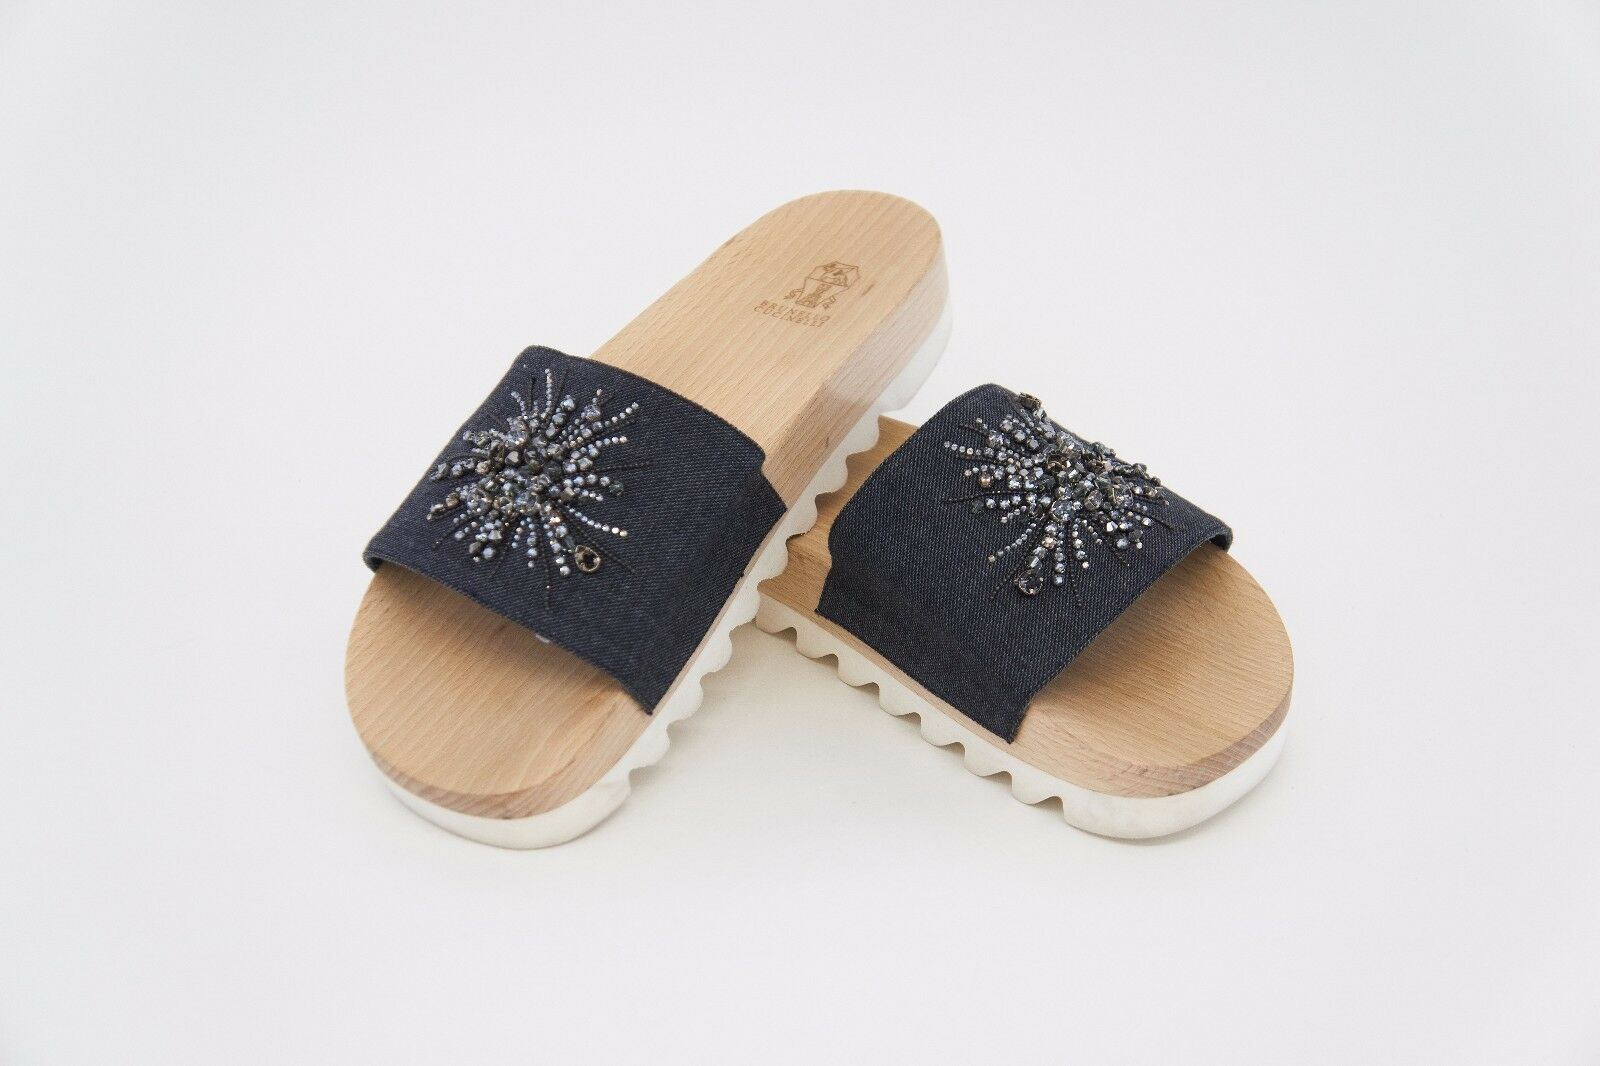 NWOB 1095 Brunello Cucinelli Sparkly Crystal Embellished Denim Slides Sz10* A176